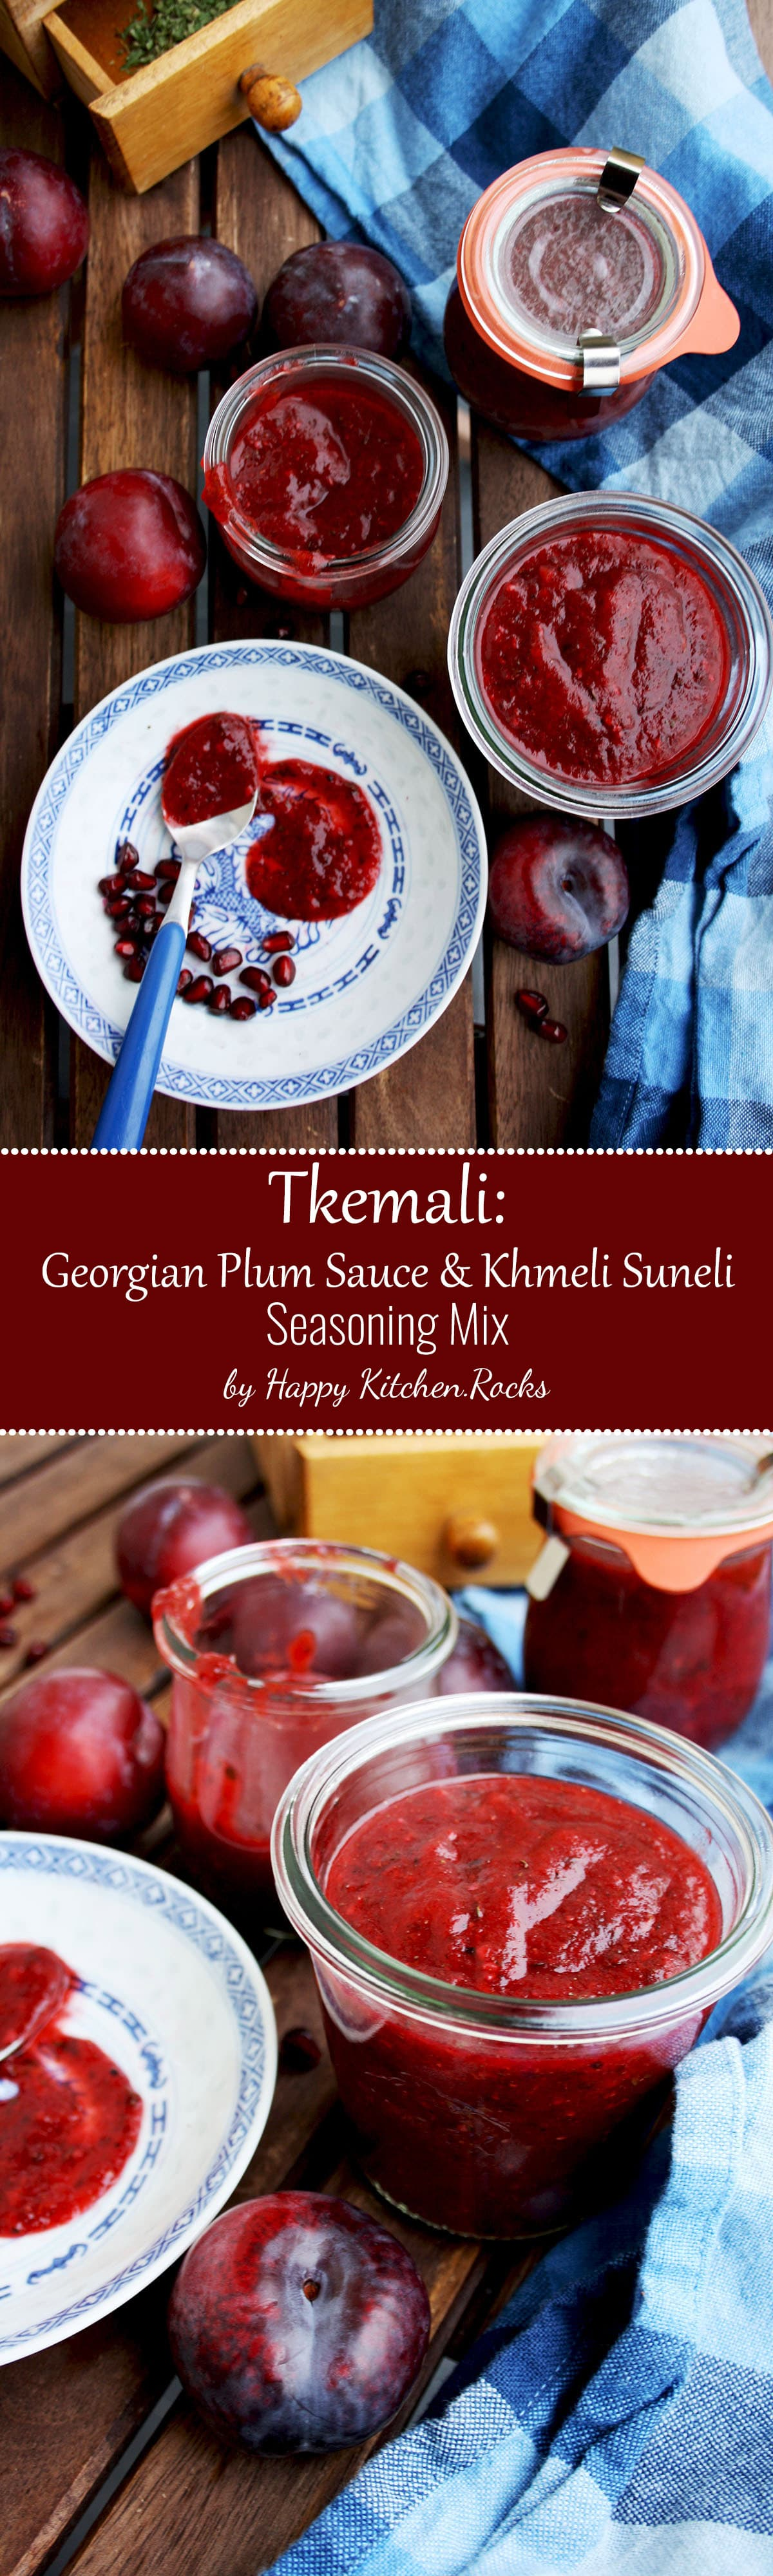 Tkemali Georgian Plum Sauce Super Long Collage with Text Overlay